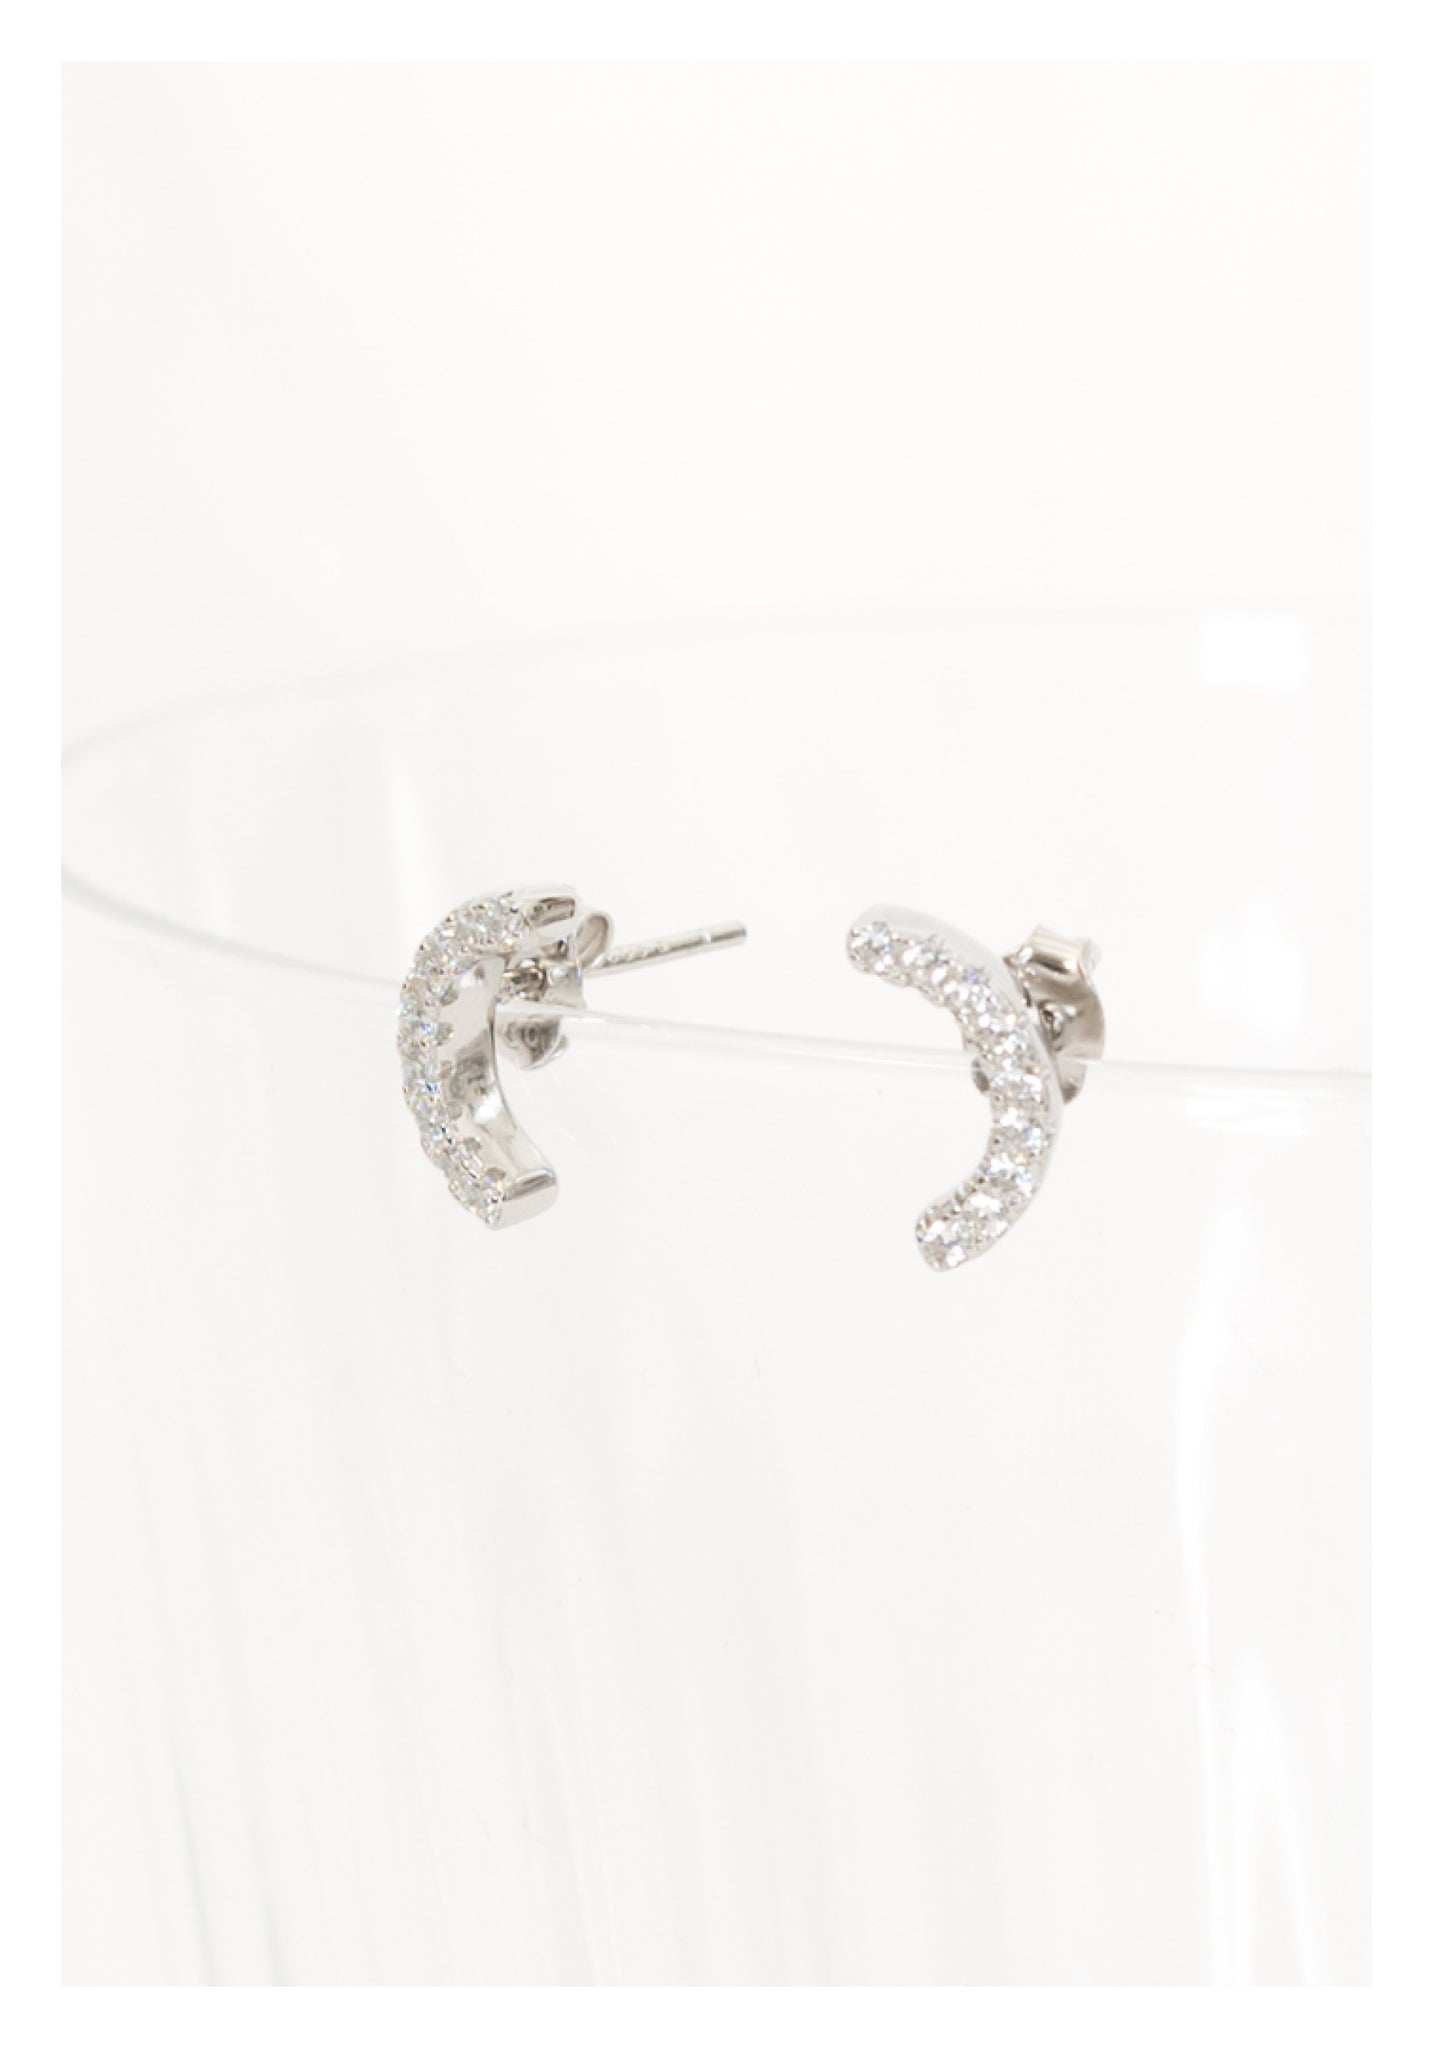 925 Silver Sparkle Curved Earrings - whoami